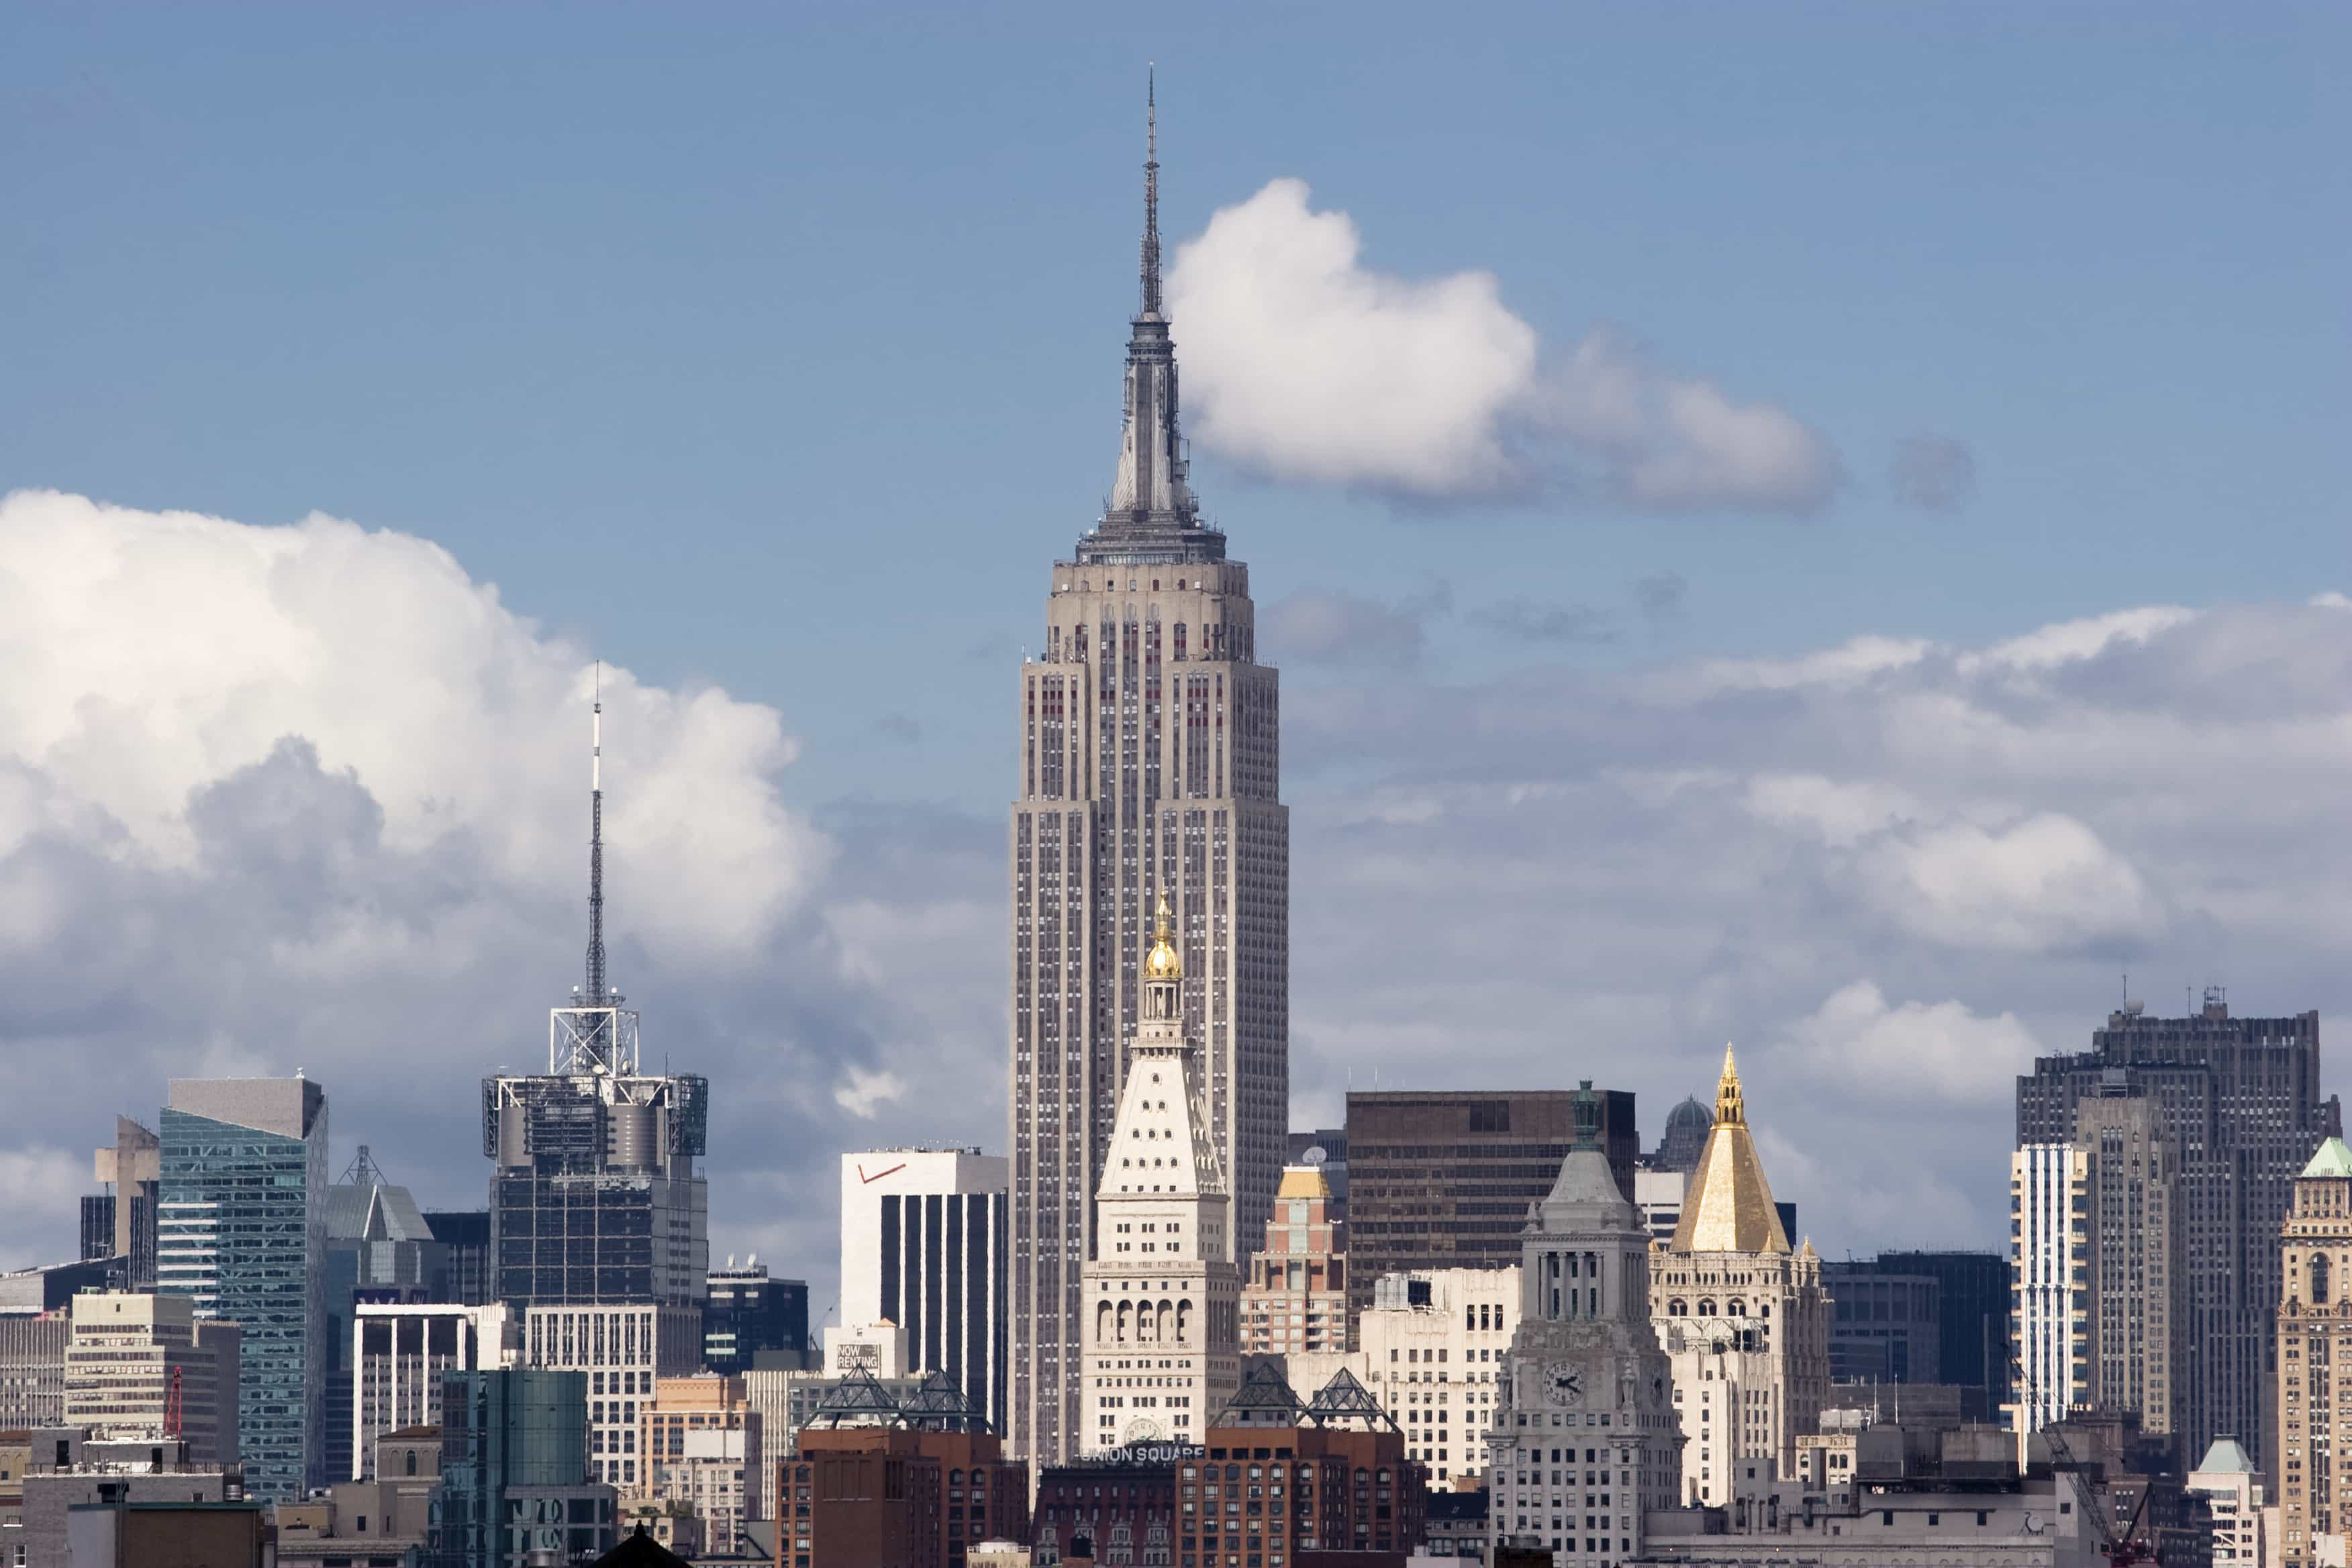 Empire State Building - iStock_000003672904_Large